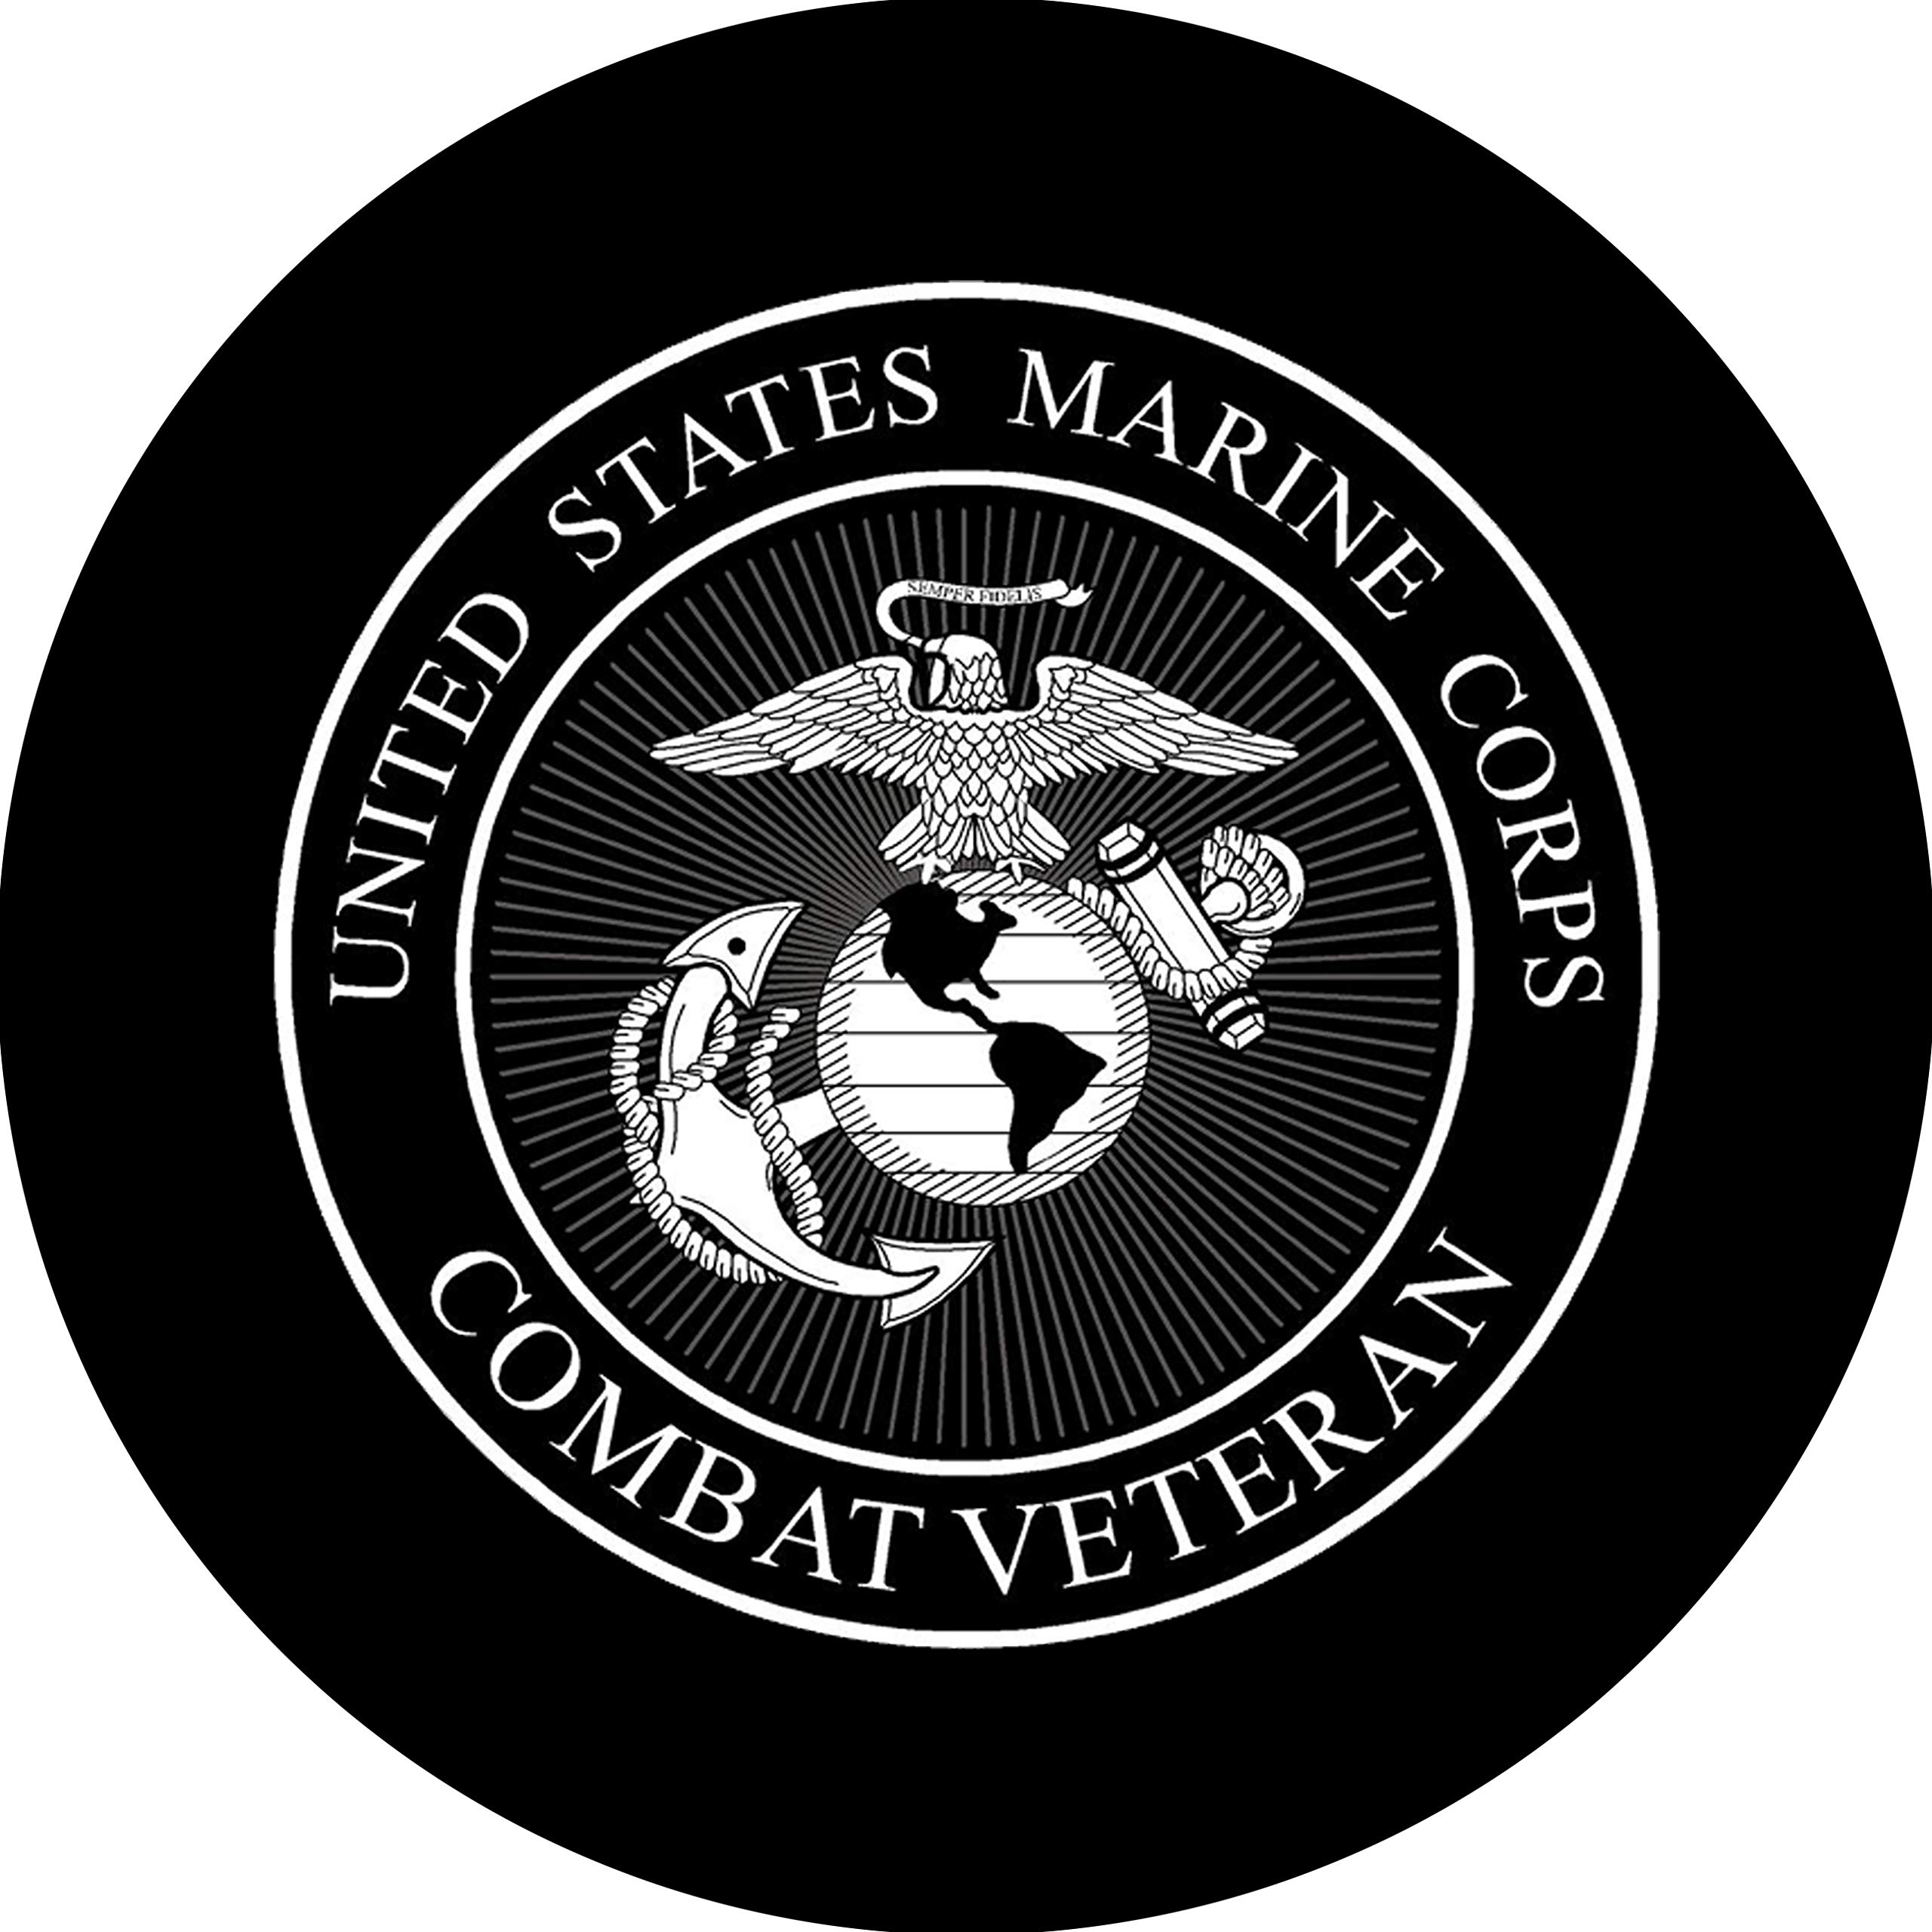 Tire Cover Central Marines Combat Veteran Logo Black & White Spare Tire Cover for Jeep RV Camper Trailer(drop down size menu by Tire Cover Central